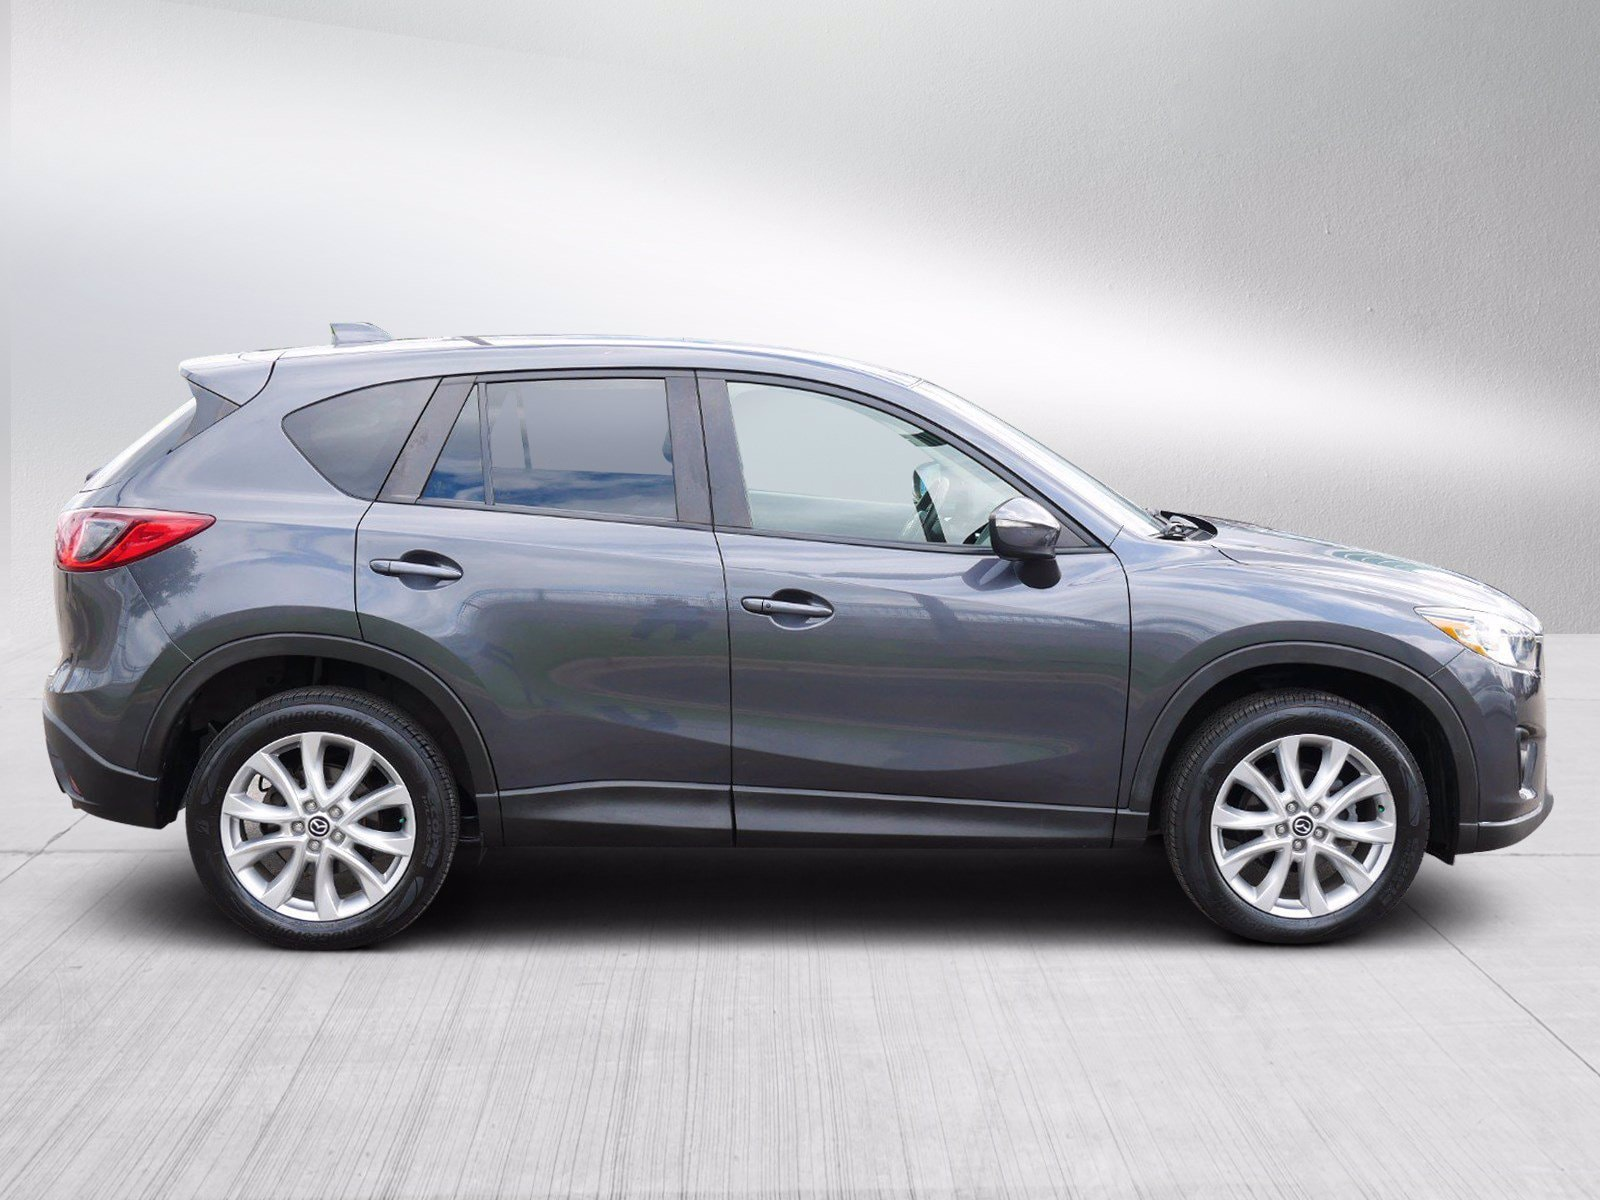 Used 2015 Mazda CX-5 Grand Touring with VIN JM3KE4DY8F0550189 for sale in Bloomington, Minnesota